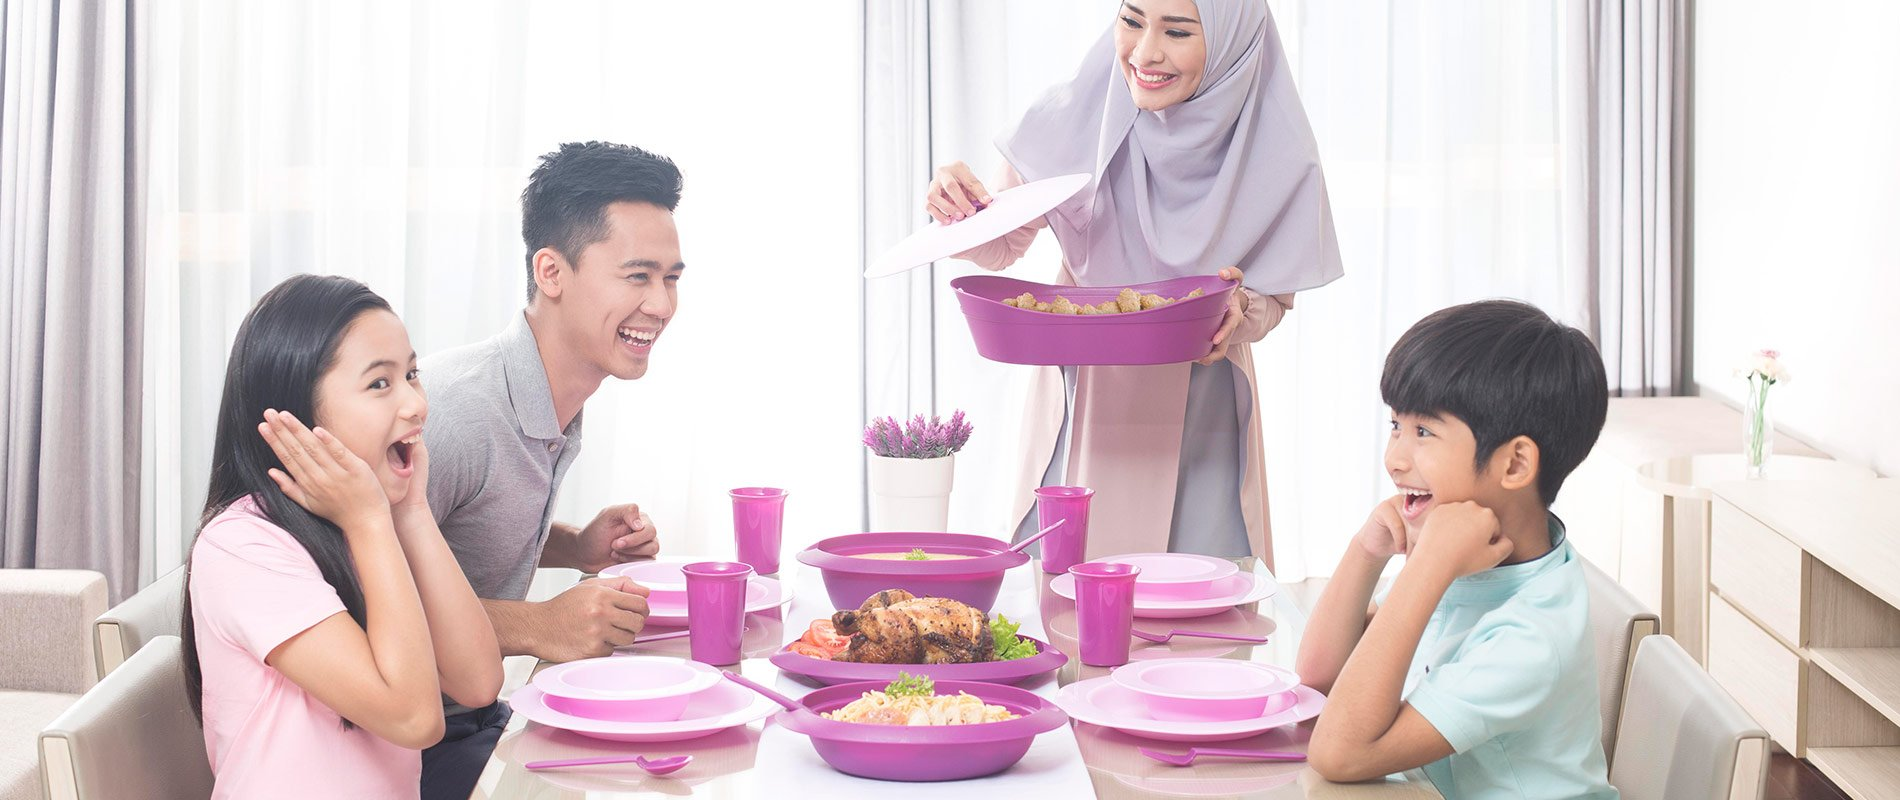 A good day for us and Indonesian families: Medina's brand launching